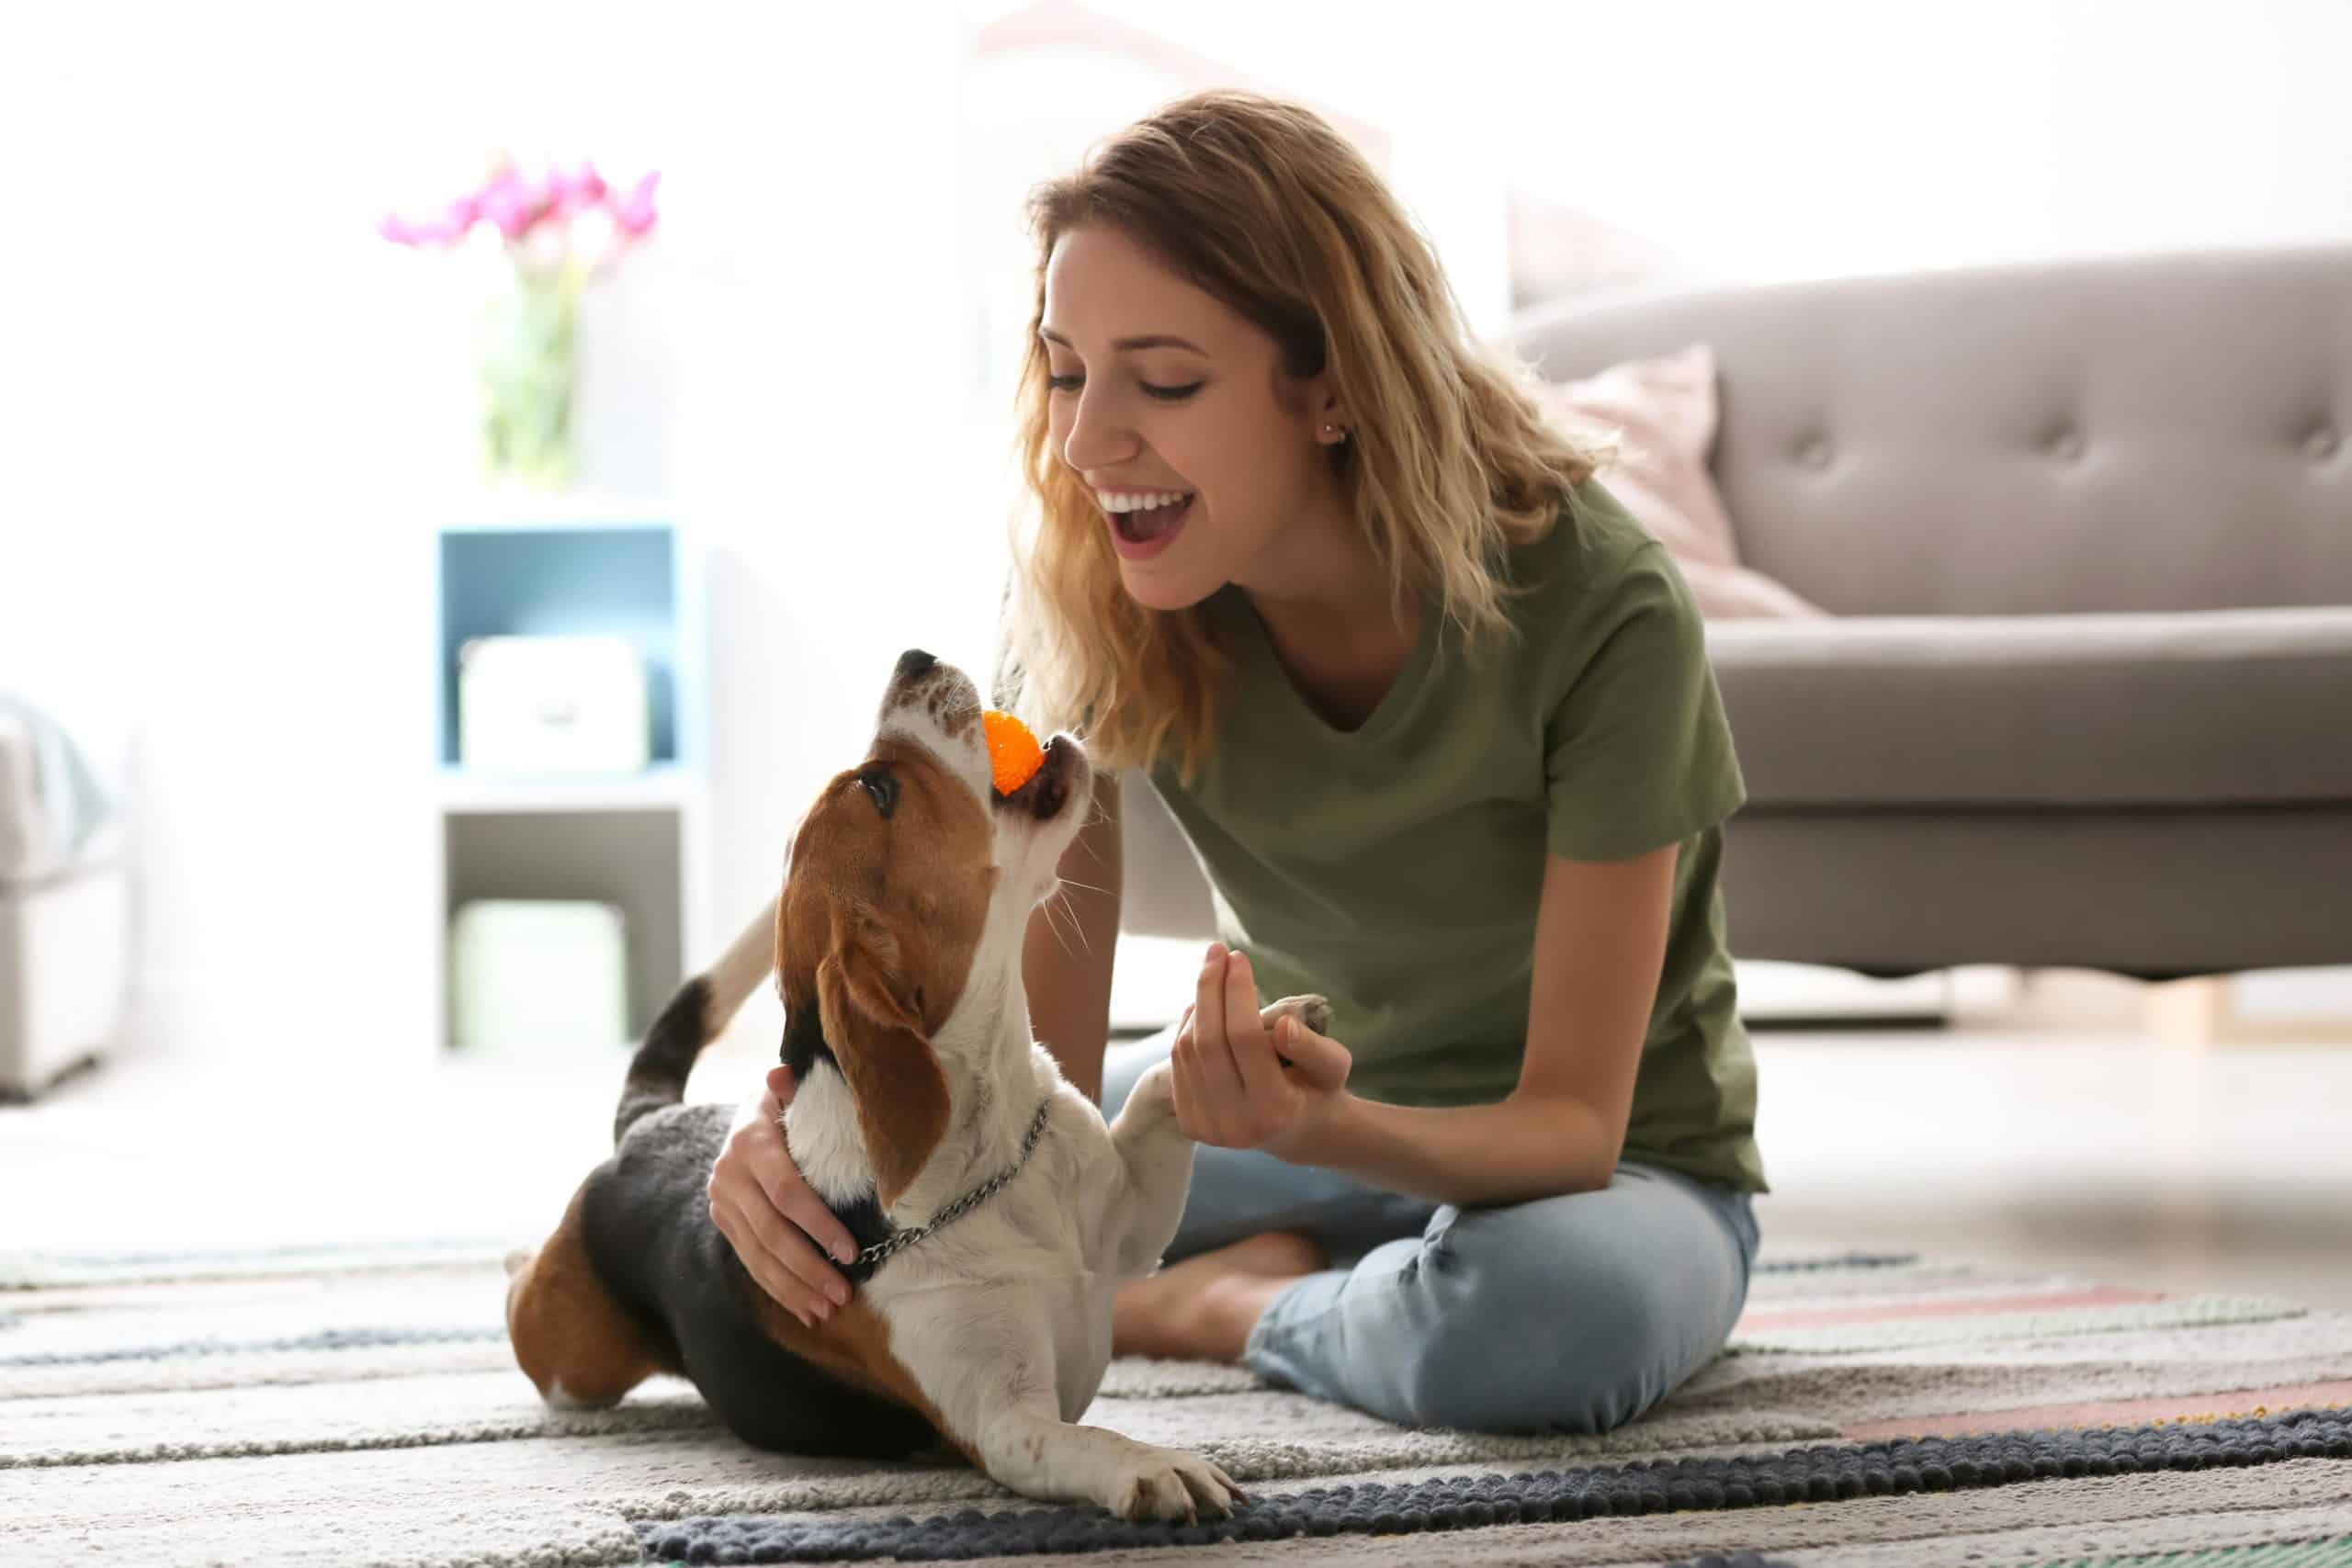 Woman plays fetch with her beagle. Looking for an exercise partner? Choose from the 12 top active dog breeds including the beagle.